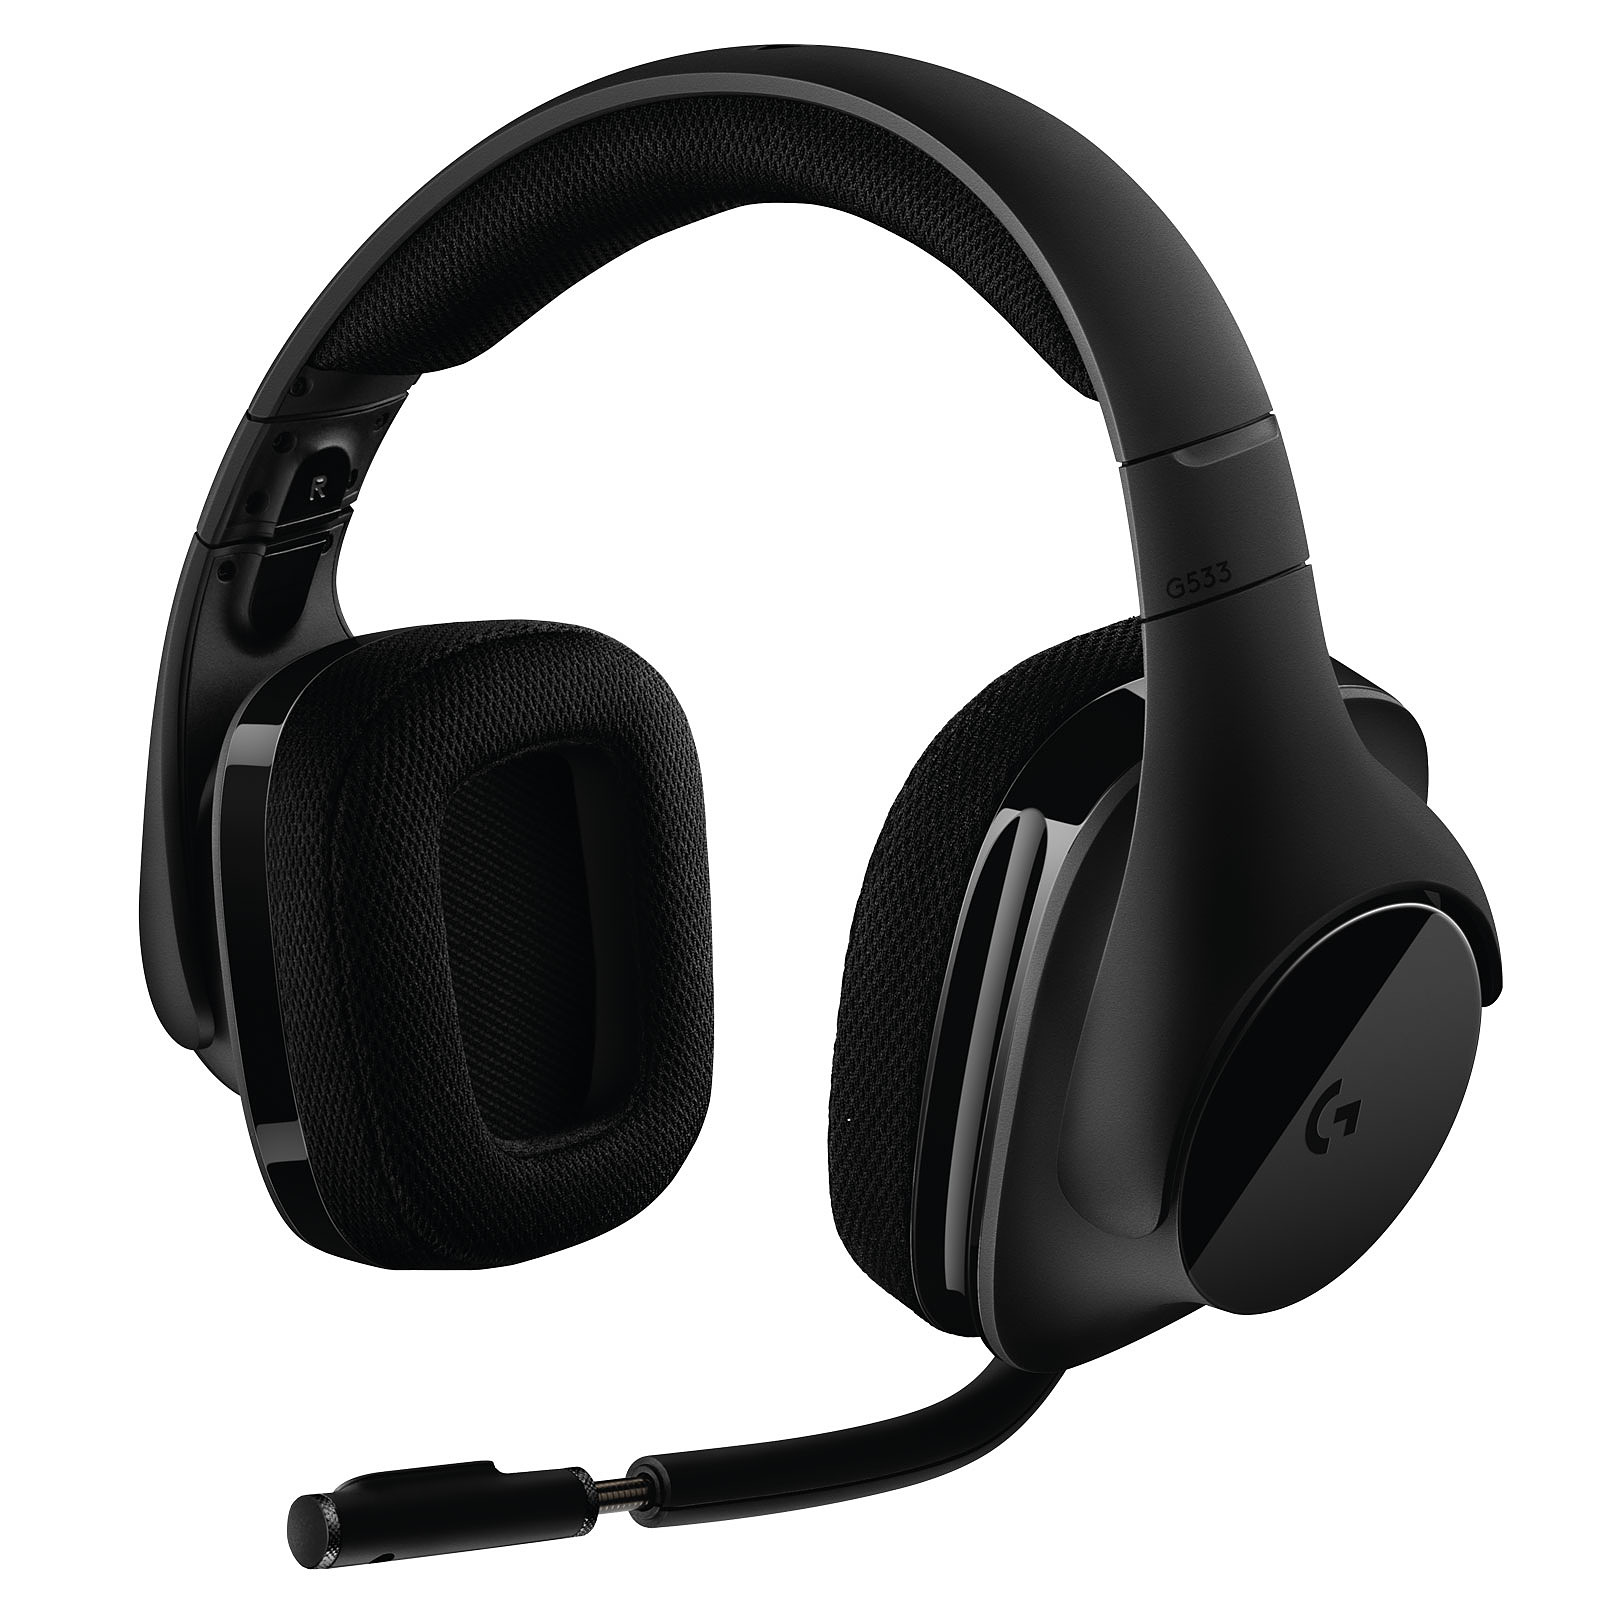 Logitech G533 Prodigy Wireless Gaming Headset